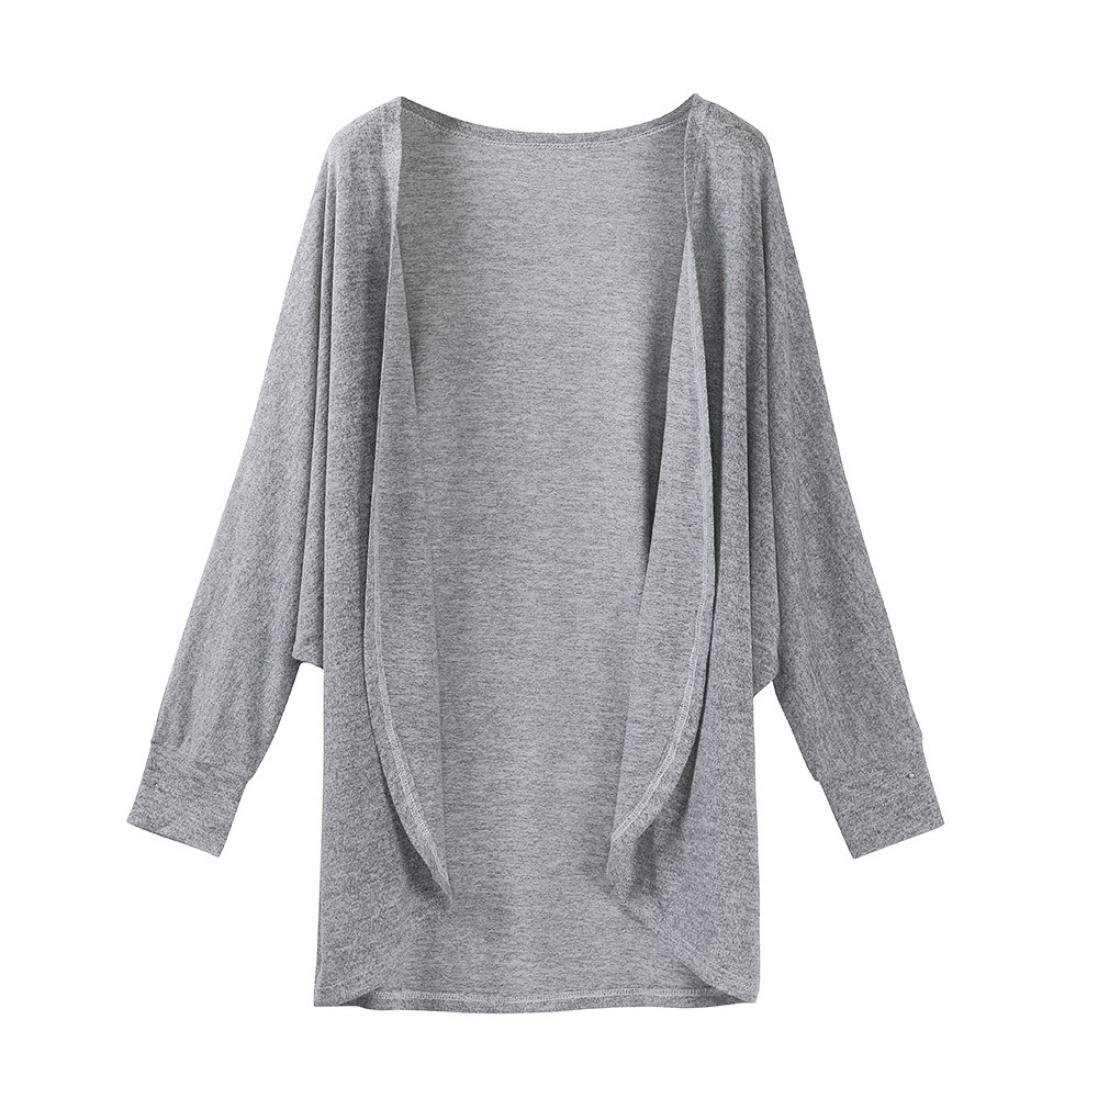 Hot Sale!Women's Cardigans Neartime Womens Kintted Cardigan Asymmetric Sweater Hem Long Sleeve Coat Tops (M, Gray)